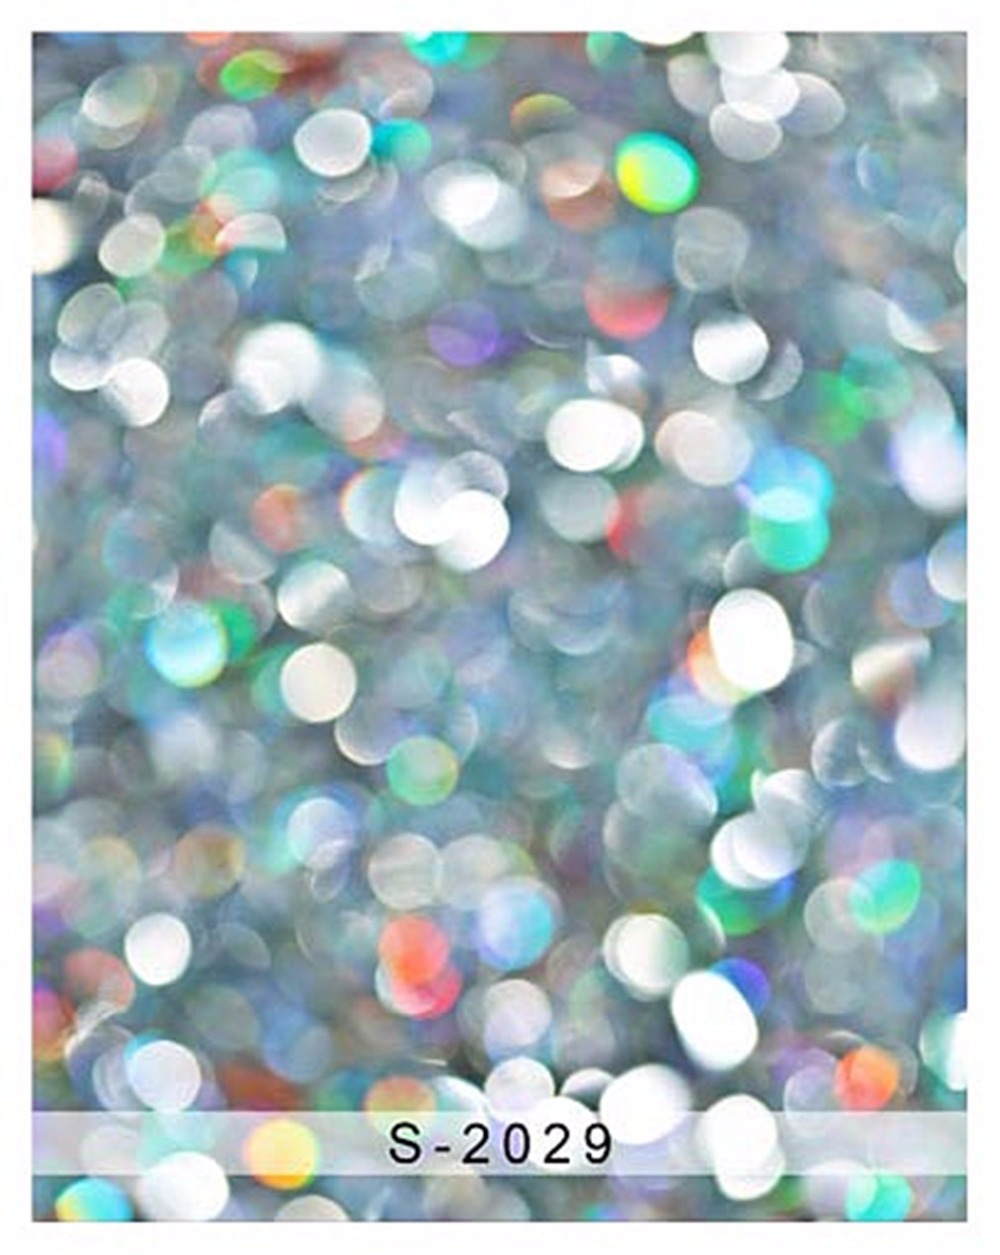 Diamond Crystal Vinyl Backdrop for Photography 150x220cm Newborn Photo Background for Studio Birthday Party Backdrop Custom Made vinyl backdrop photography lovely painting of wildflowers newborn photography background cm s 110